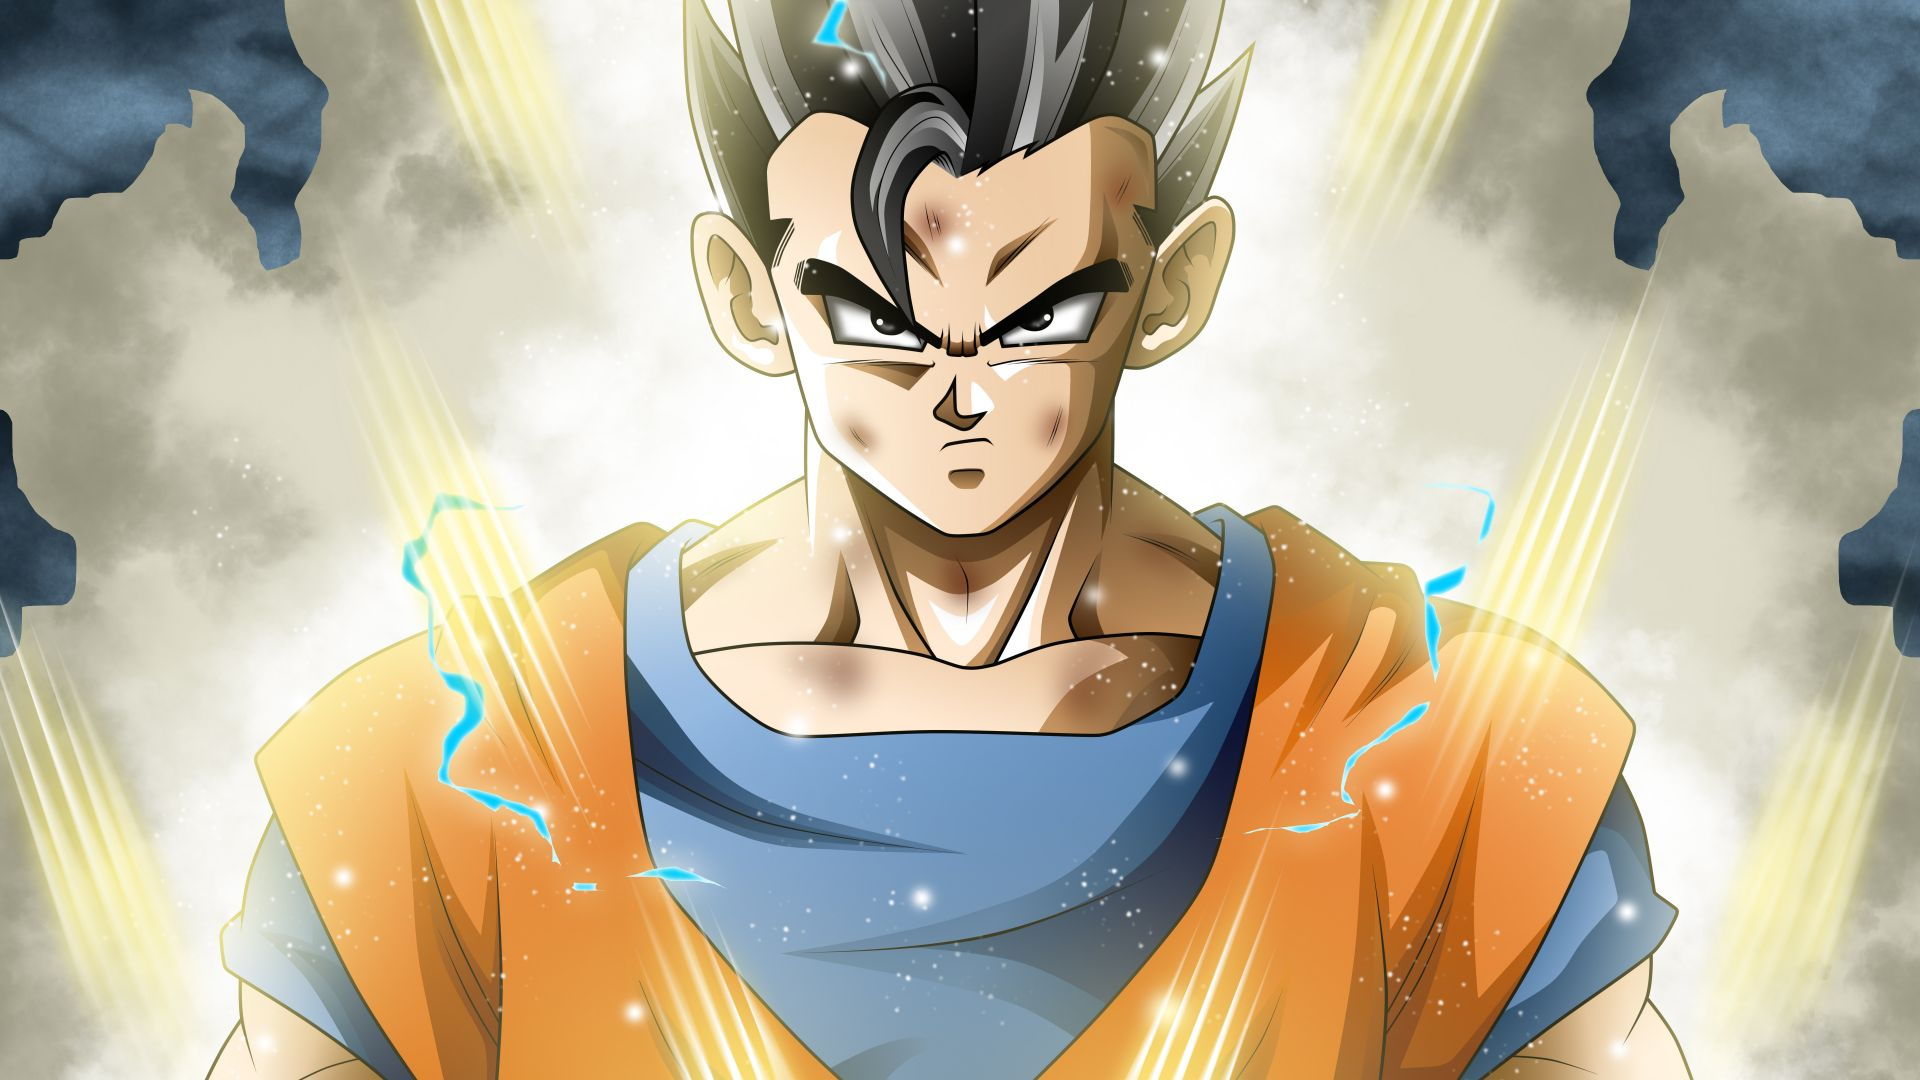 аниме, Драконий жемчуг: Супер, Мистик Гохан, anime, Dragon Ball Super, Mystic Gohan, 5k (horizontal)